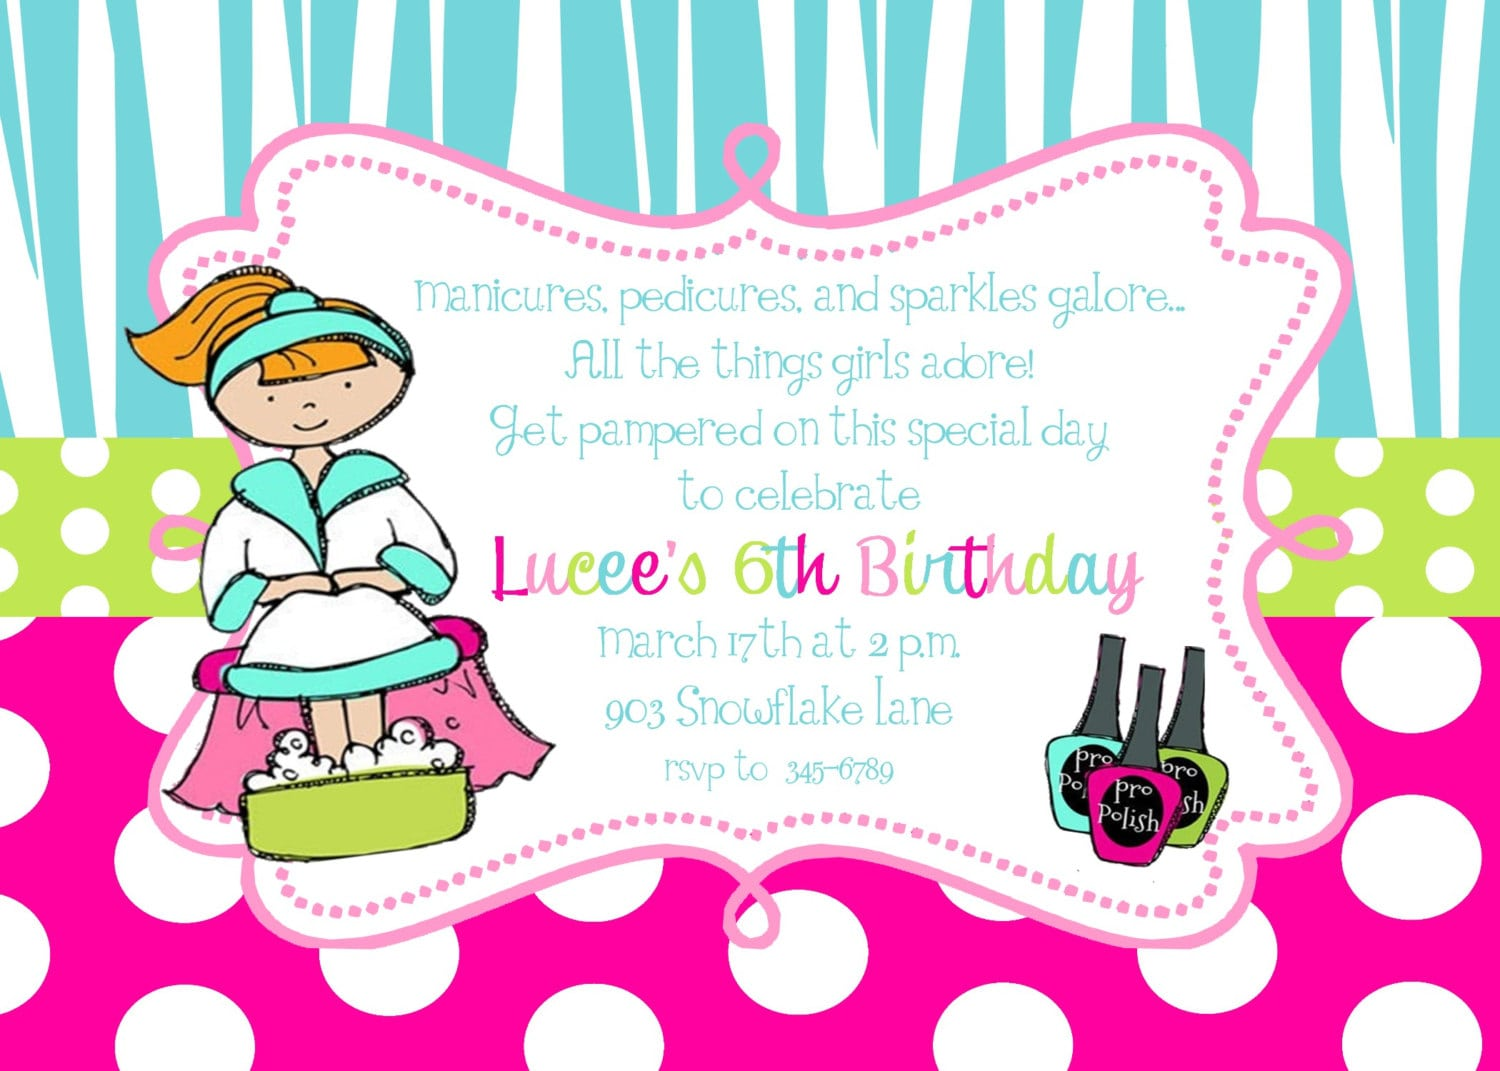 Pamper Party Invitations For Girls